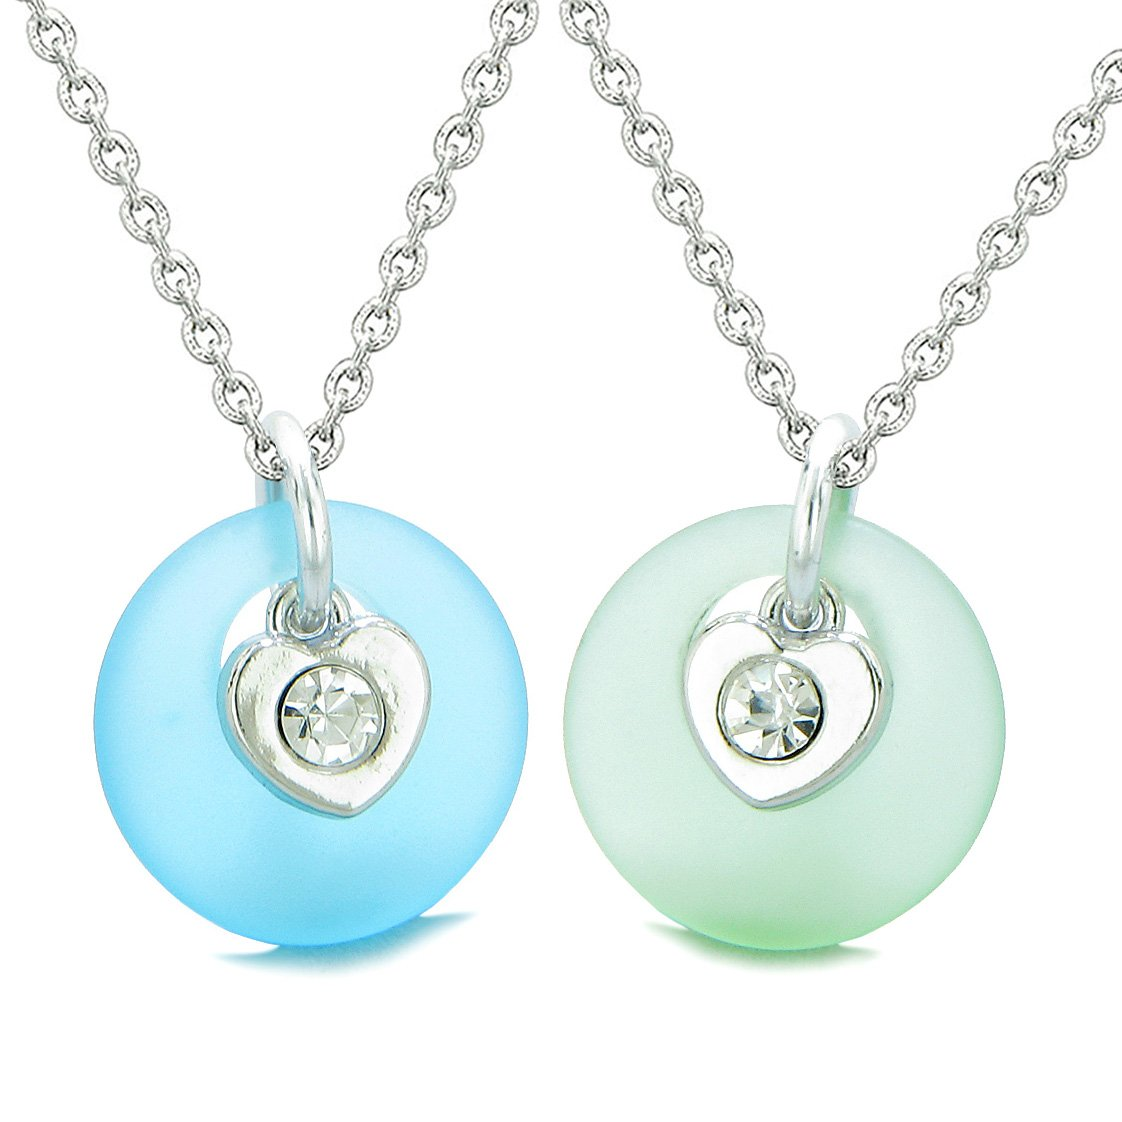 Sea Glass Lucky Donut Crystal Heart Charm Sky Blue Mint Green Love Couples BFF Set Amulet Necklaces